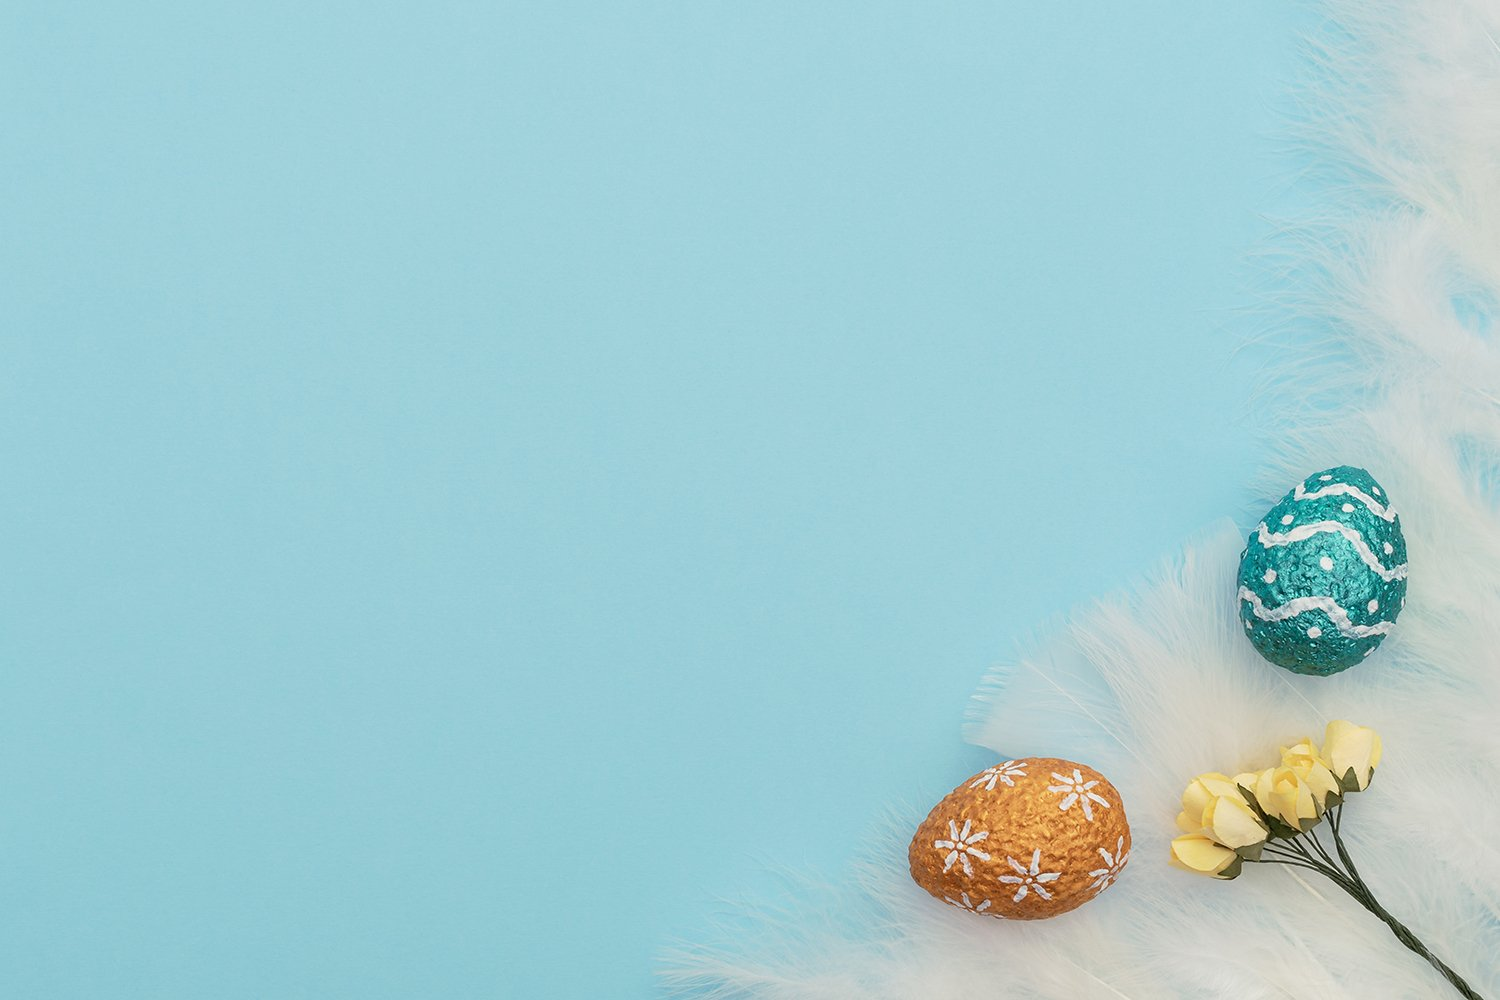 Easter eggs with yellow spring flowers example image 1